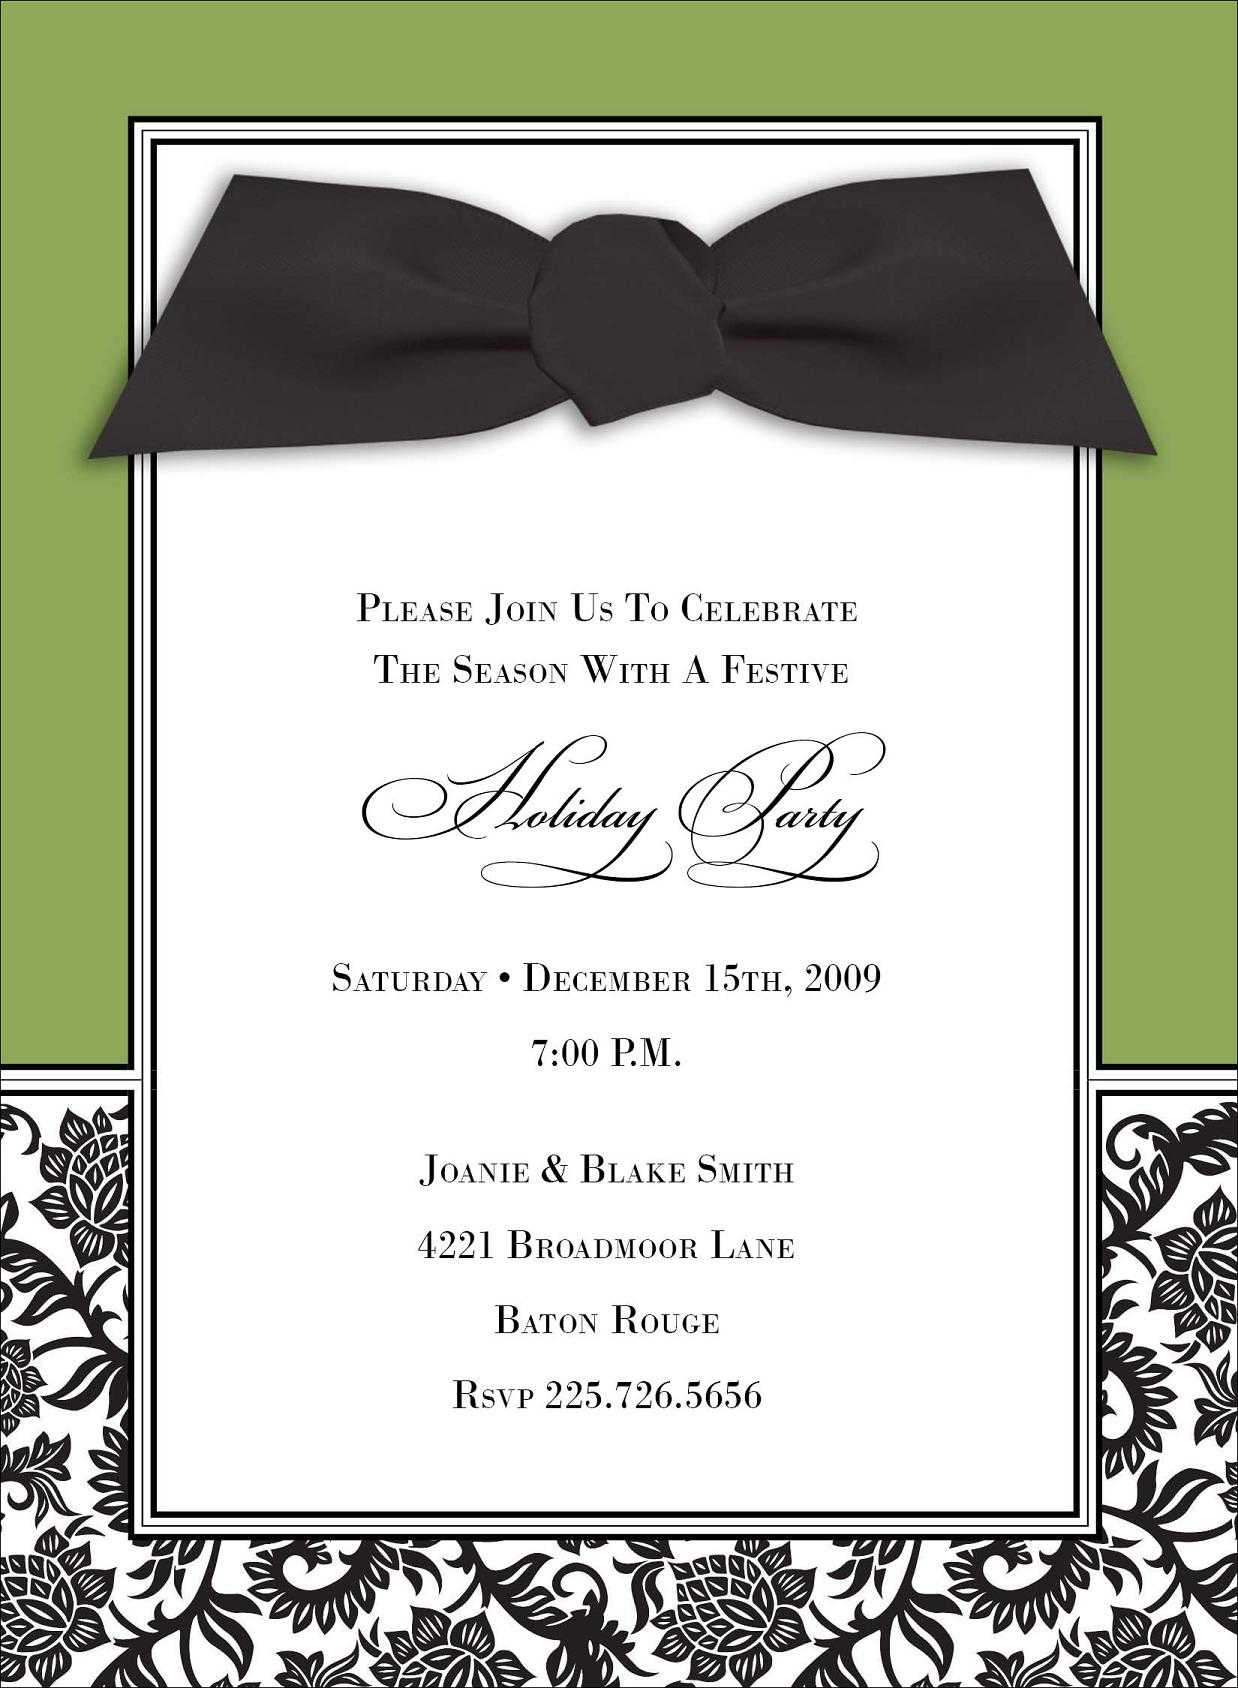 doc 540210 invitation card event professional events free